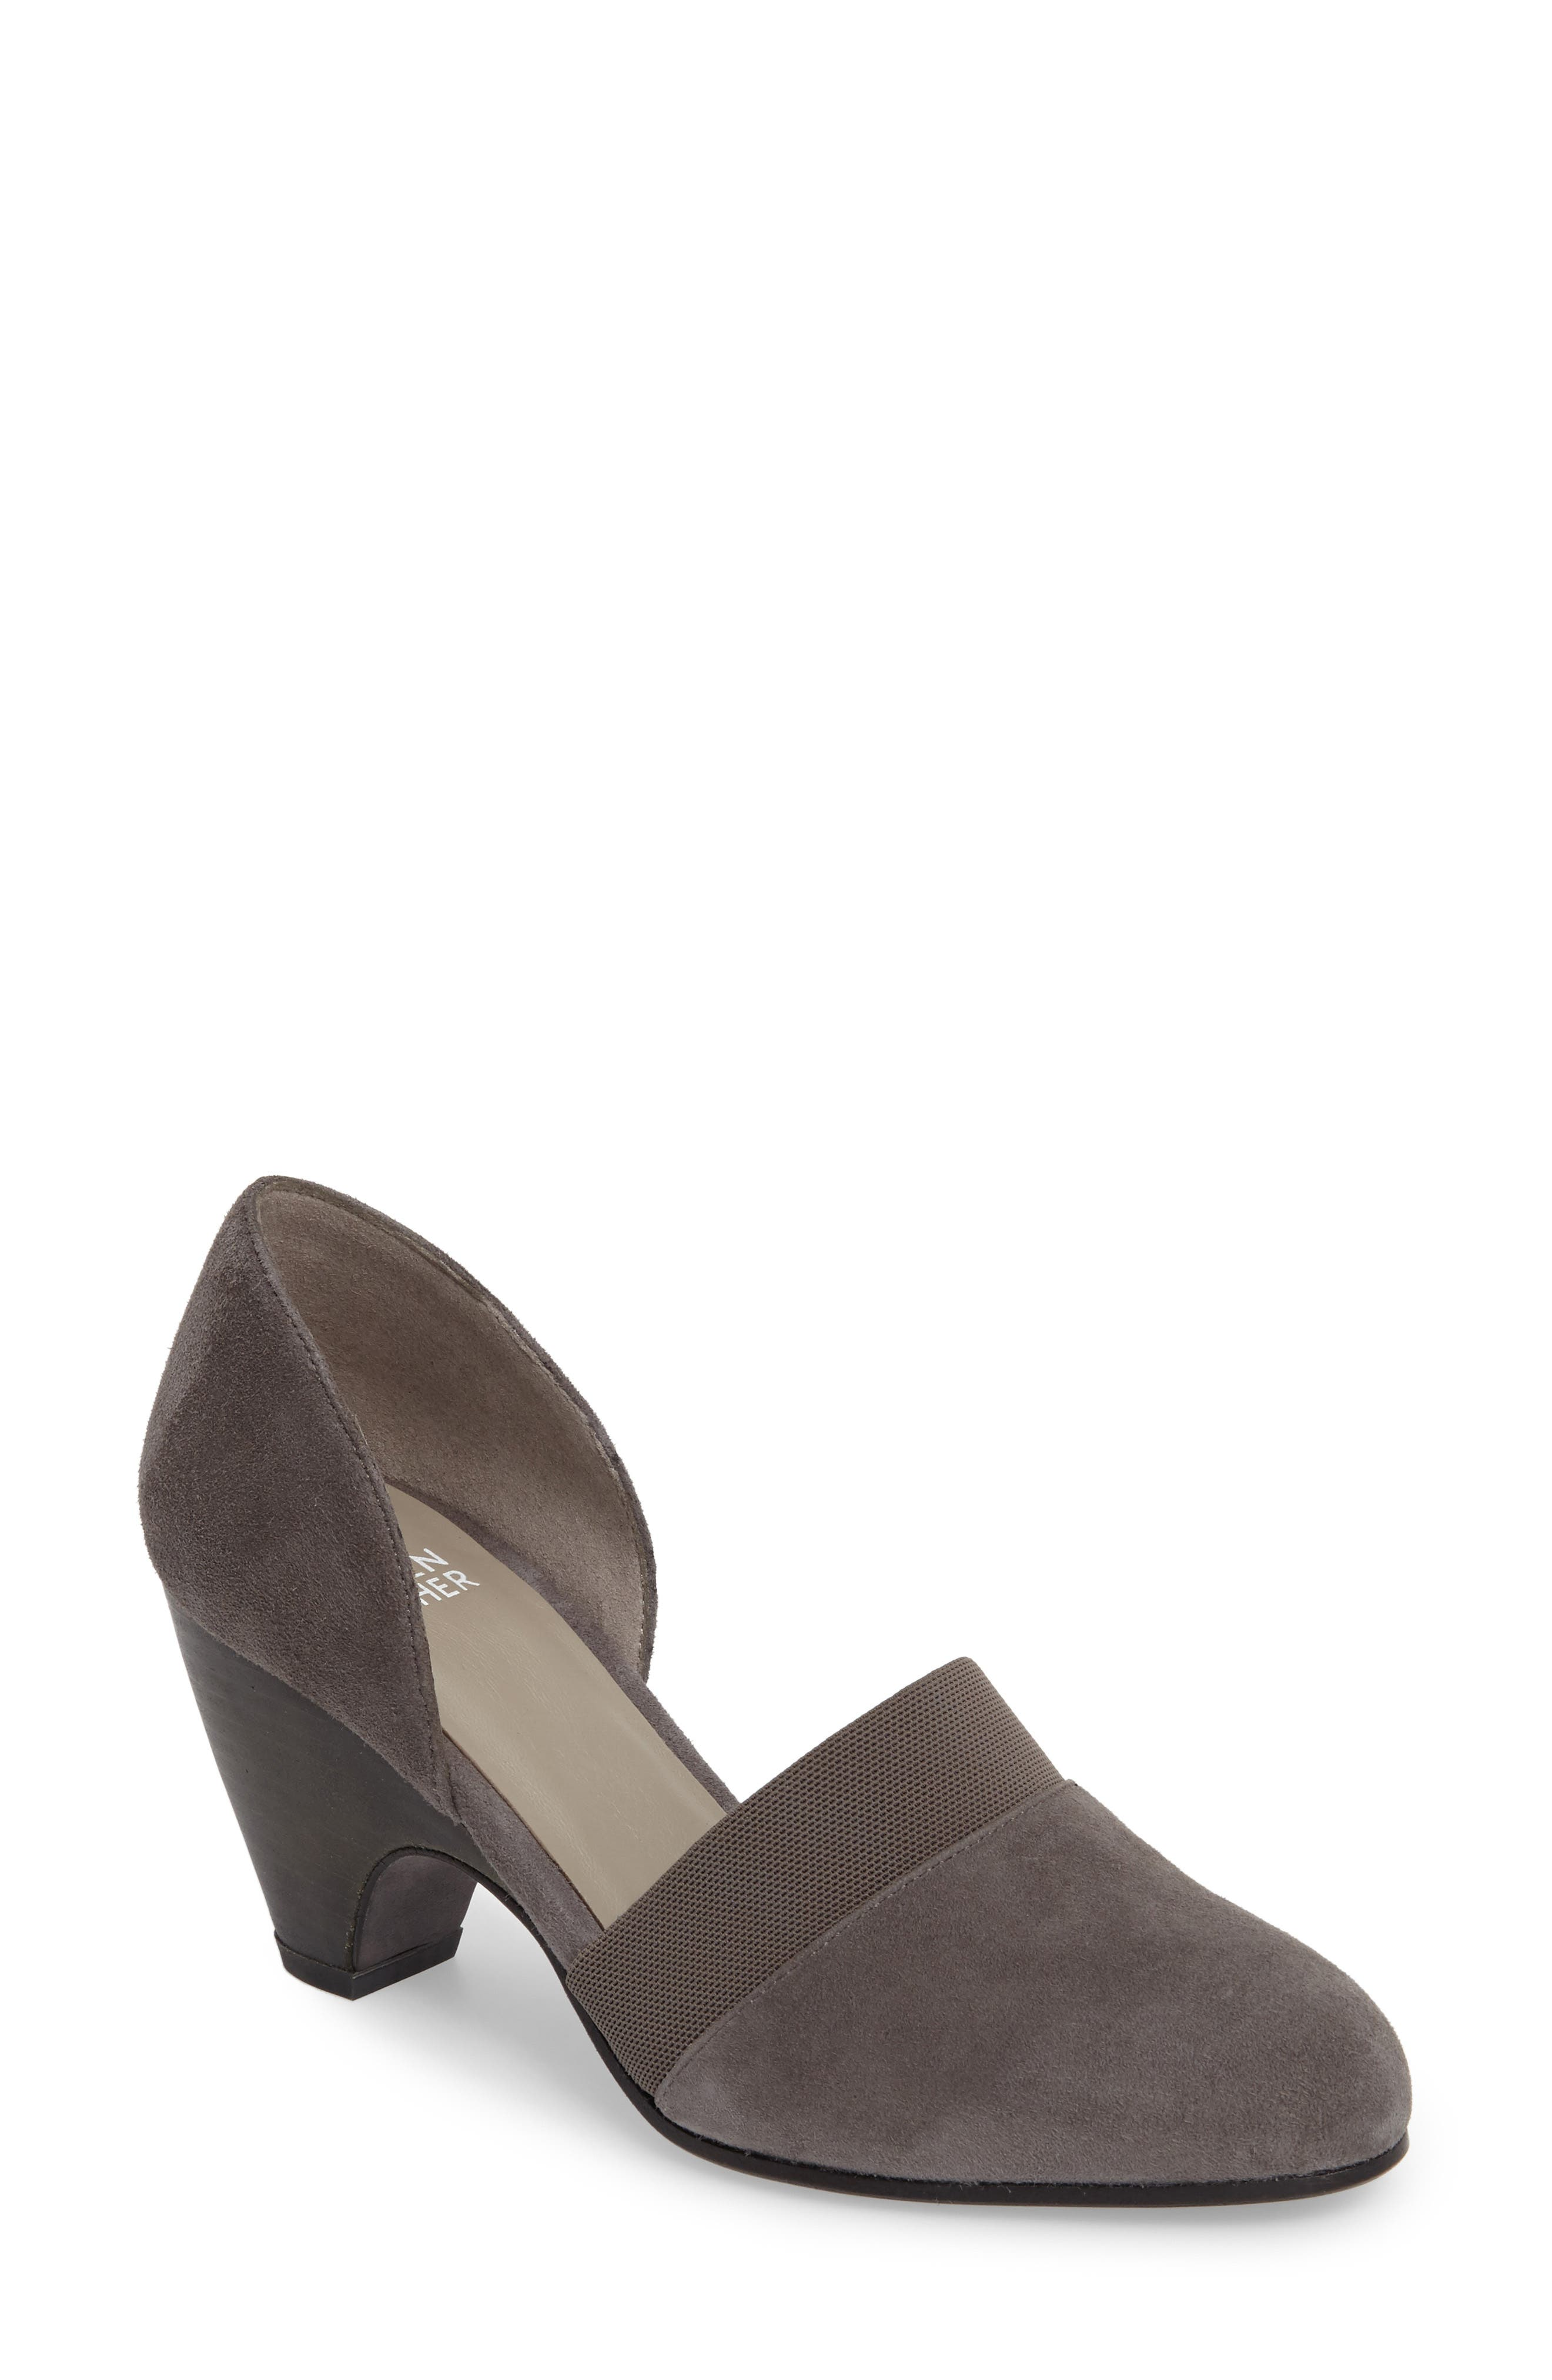 Main Image - Eileen Fisher Bailey d'Orsay Pump (Women)